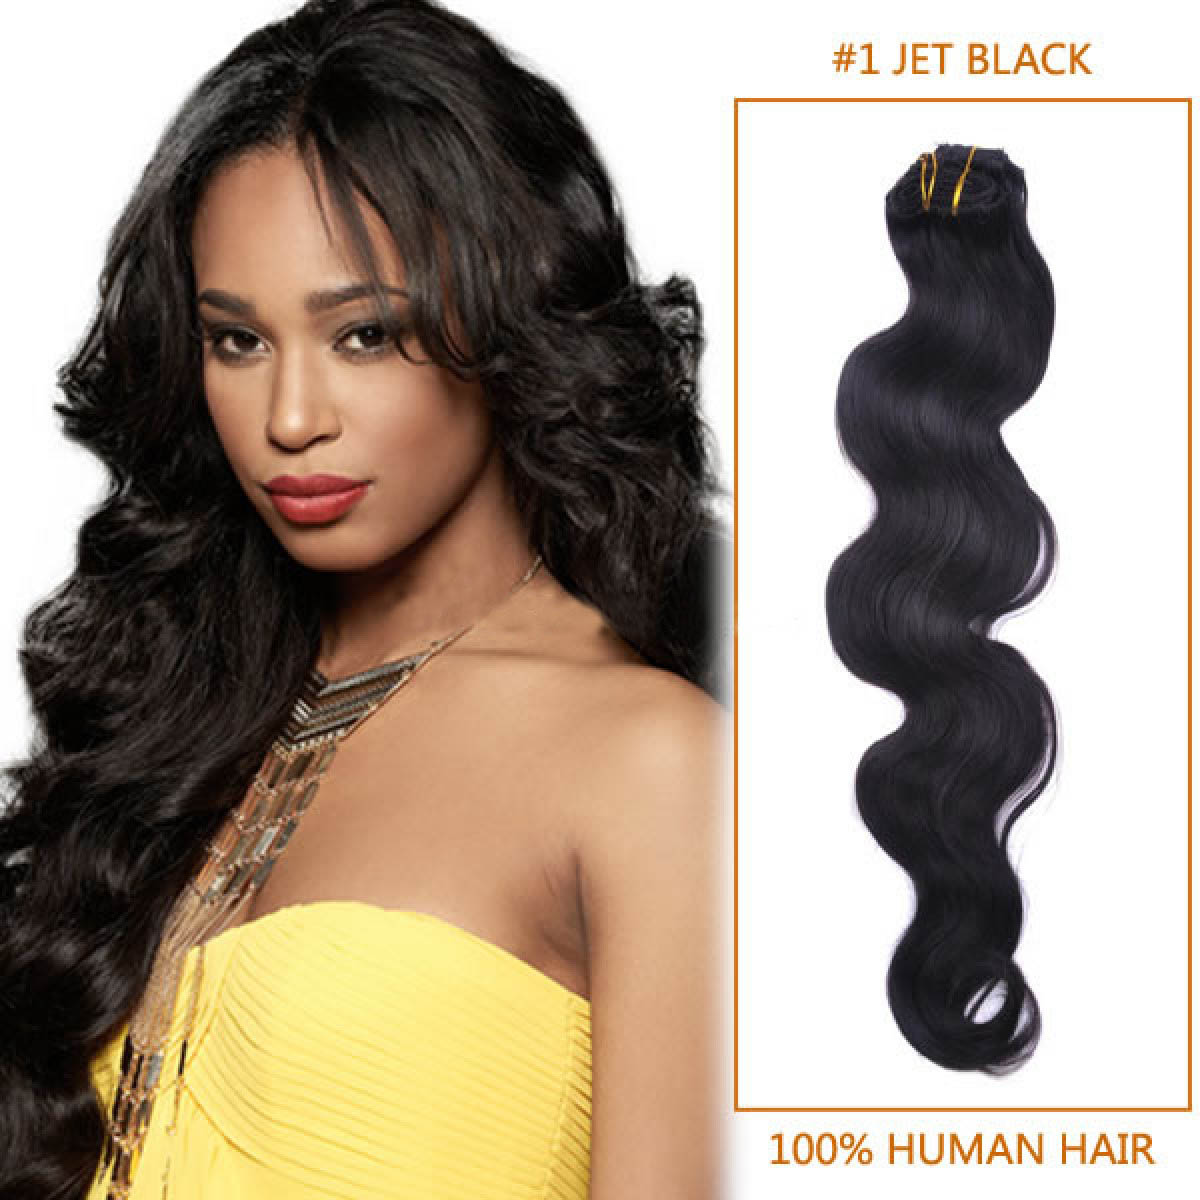 18 inch black human hair extensions